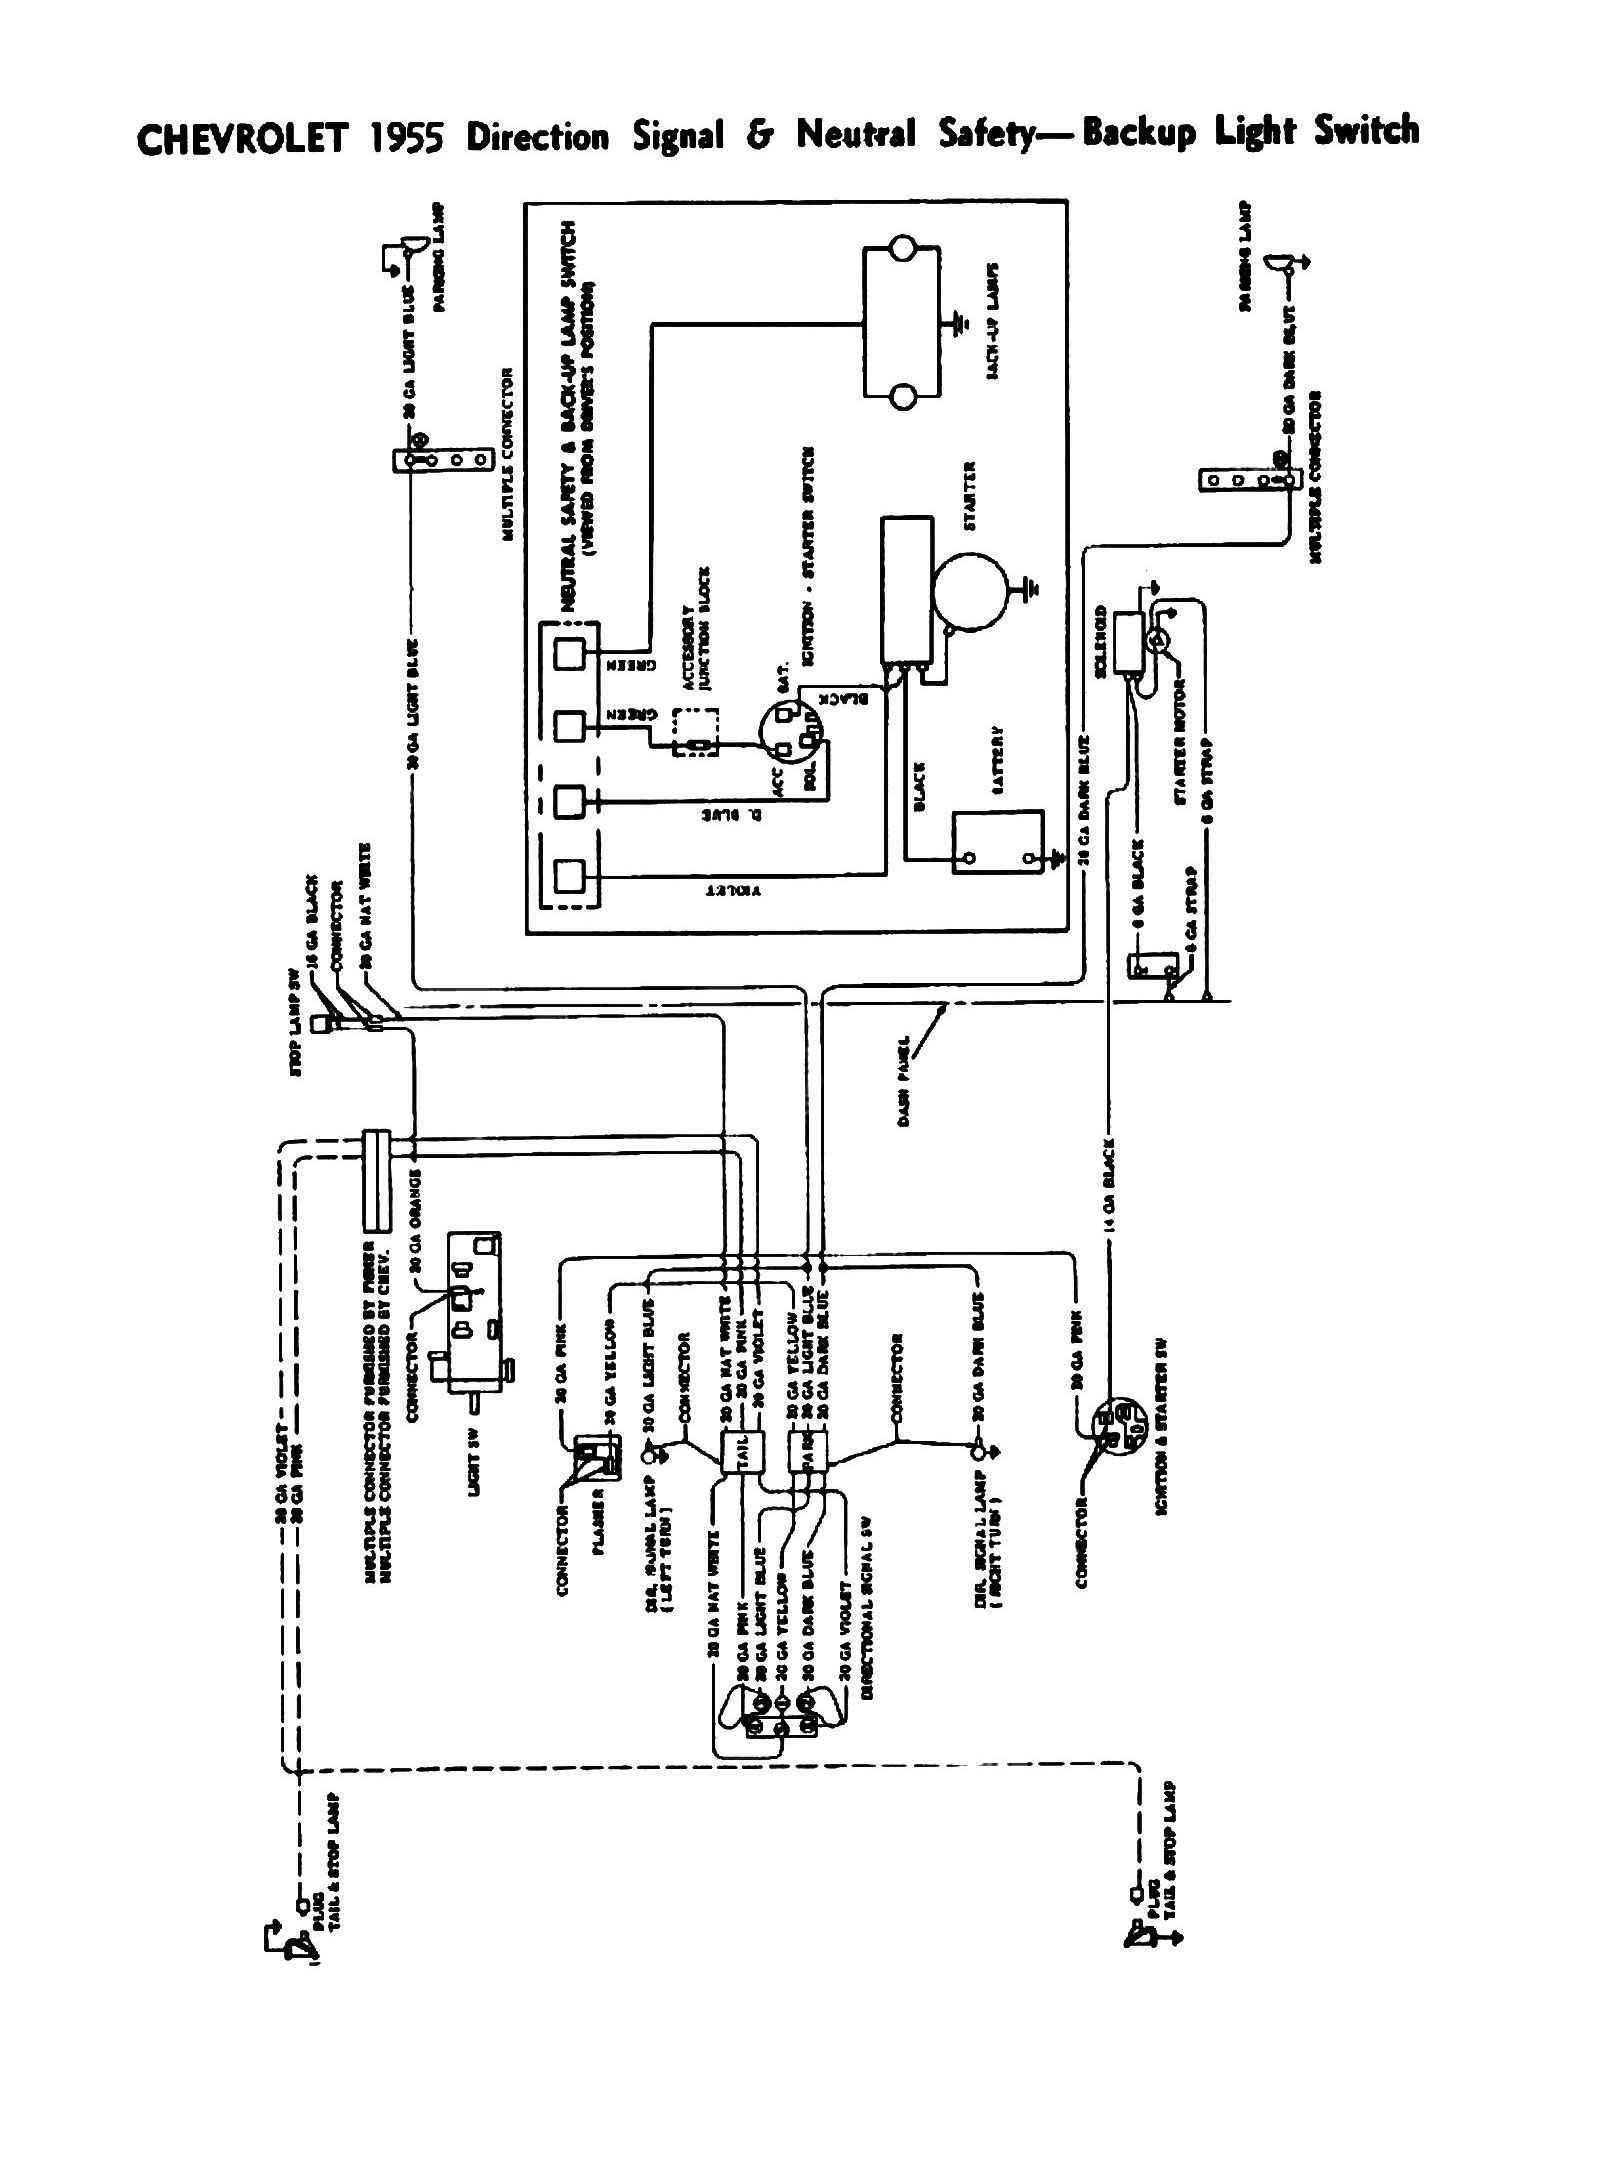 1957 chevy dash wiring diagram data wiring diagrams rh 11 xcvfd treatymonitoring de